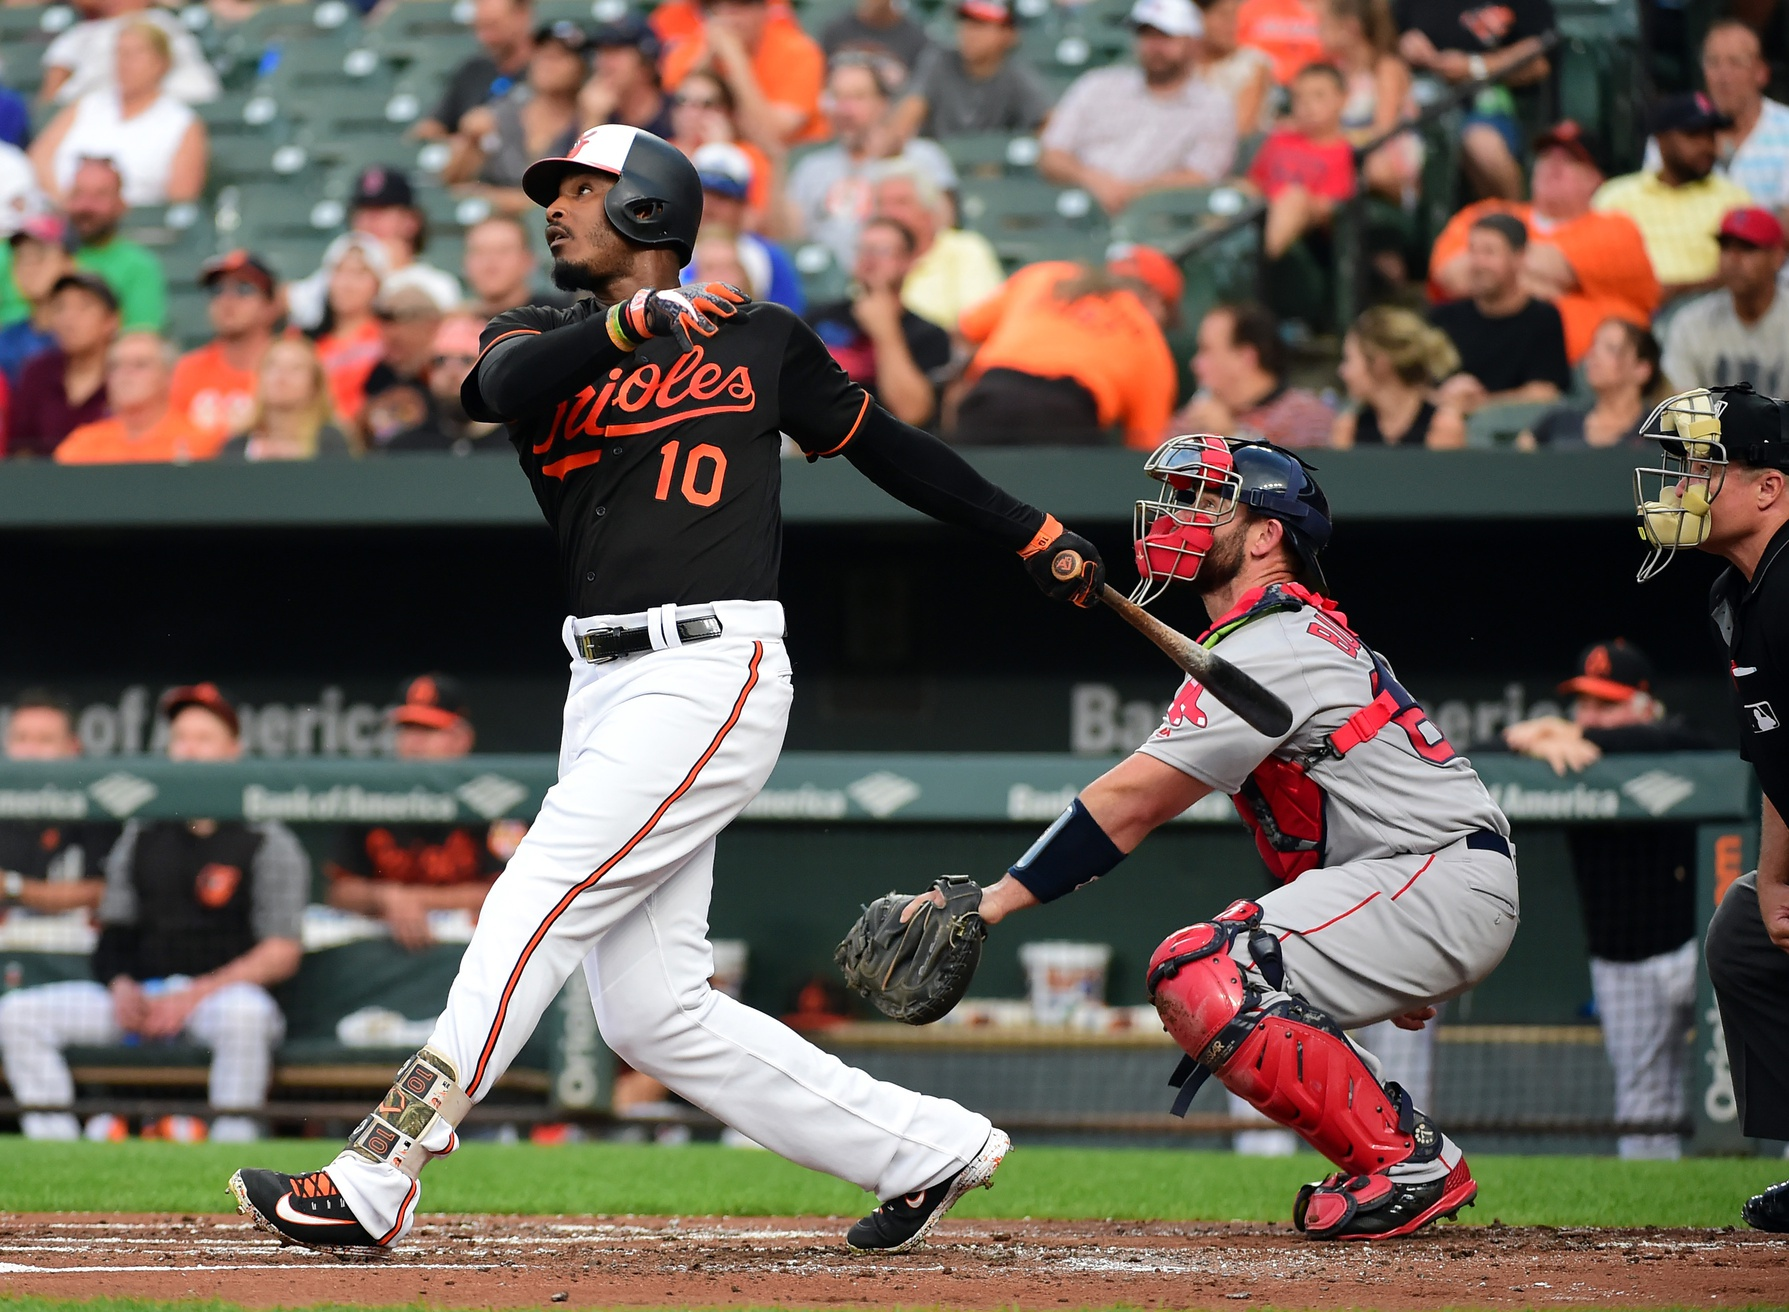 Aug 10, 2018; Baltimore, MD, USA; Baltimore Orioles outfielder Adam Jones (10) singles in the first inning against the Boston Red Sox at Oriole Park at Camden Yards. Mandatory Credit: Evan Habeeb-USA TODAY Sports